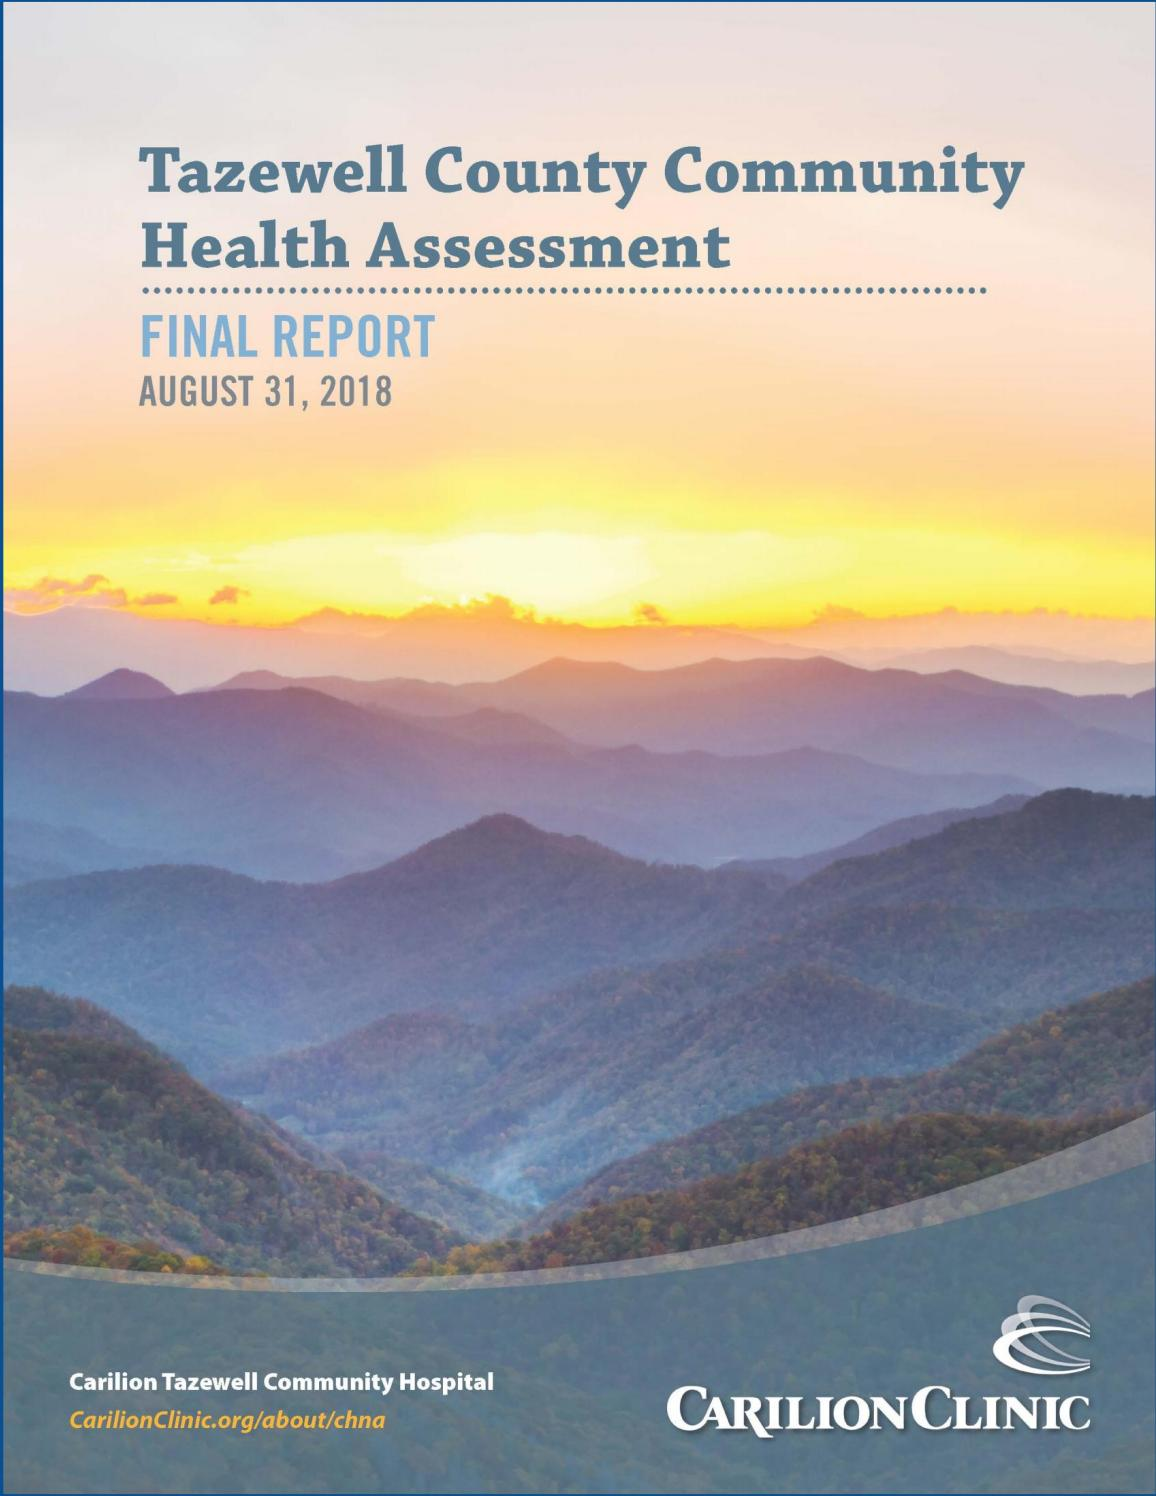 2018 Tazewell County Community Health Assessment Report